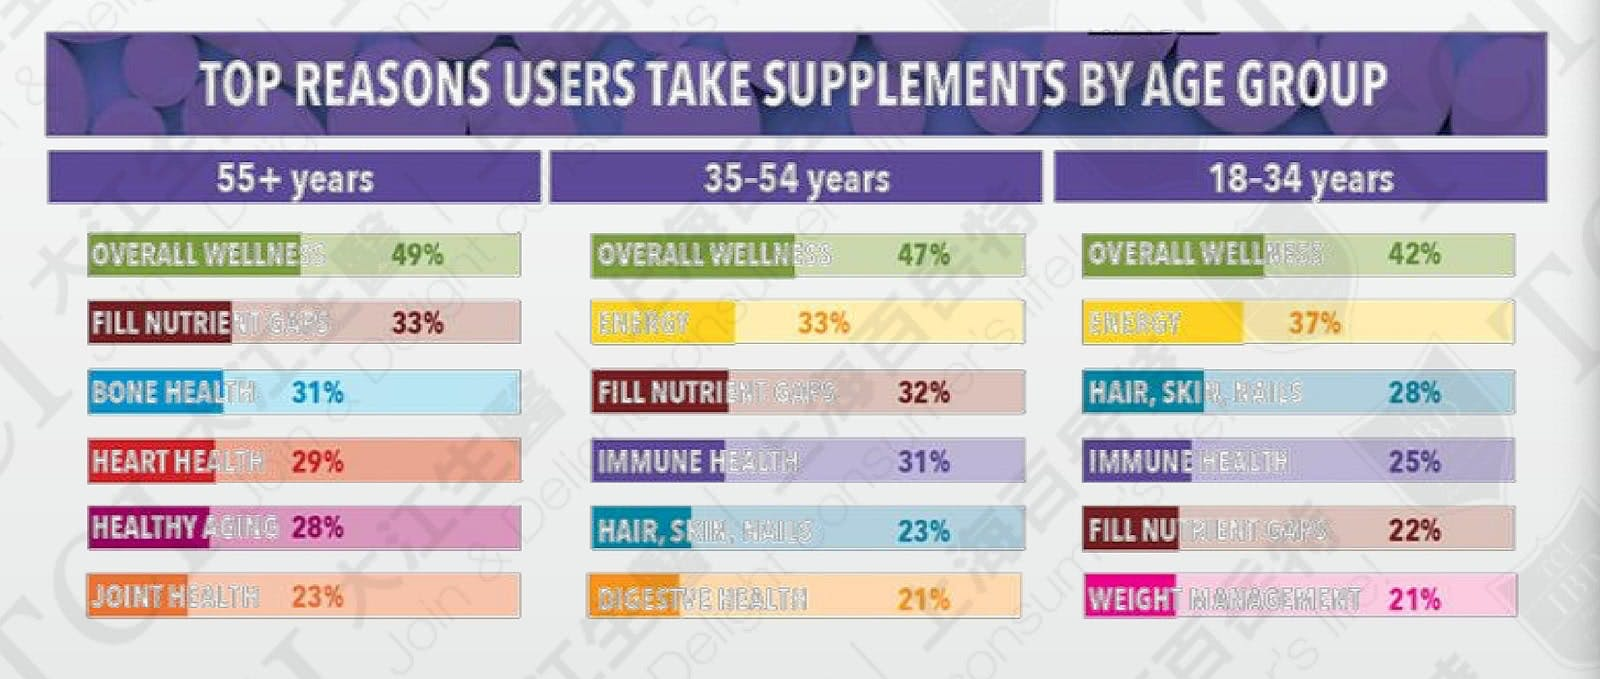 2018 Top Reasons for USA Consumers Taking Supplement by Age, Data Source: CRN